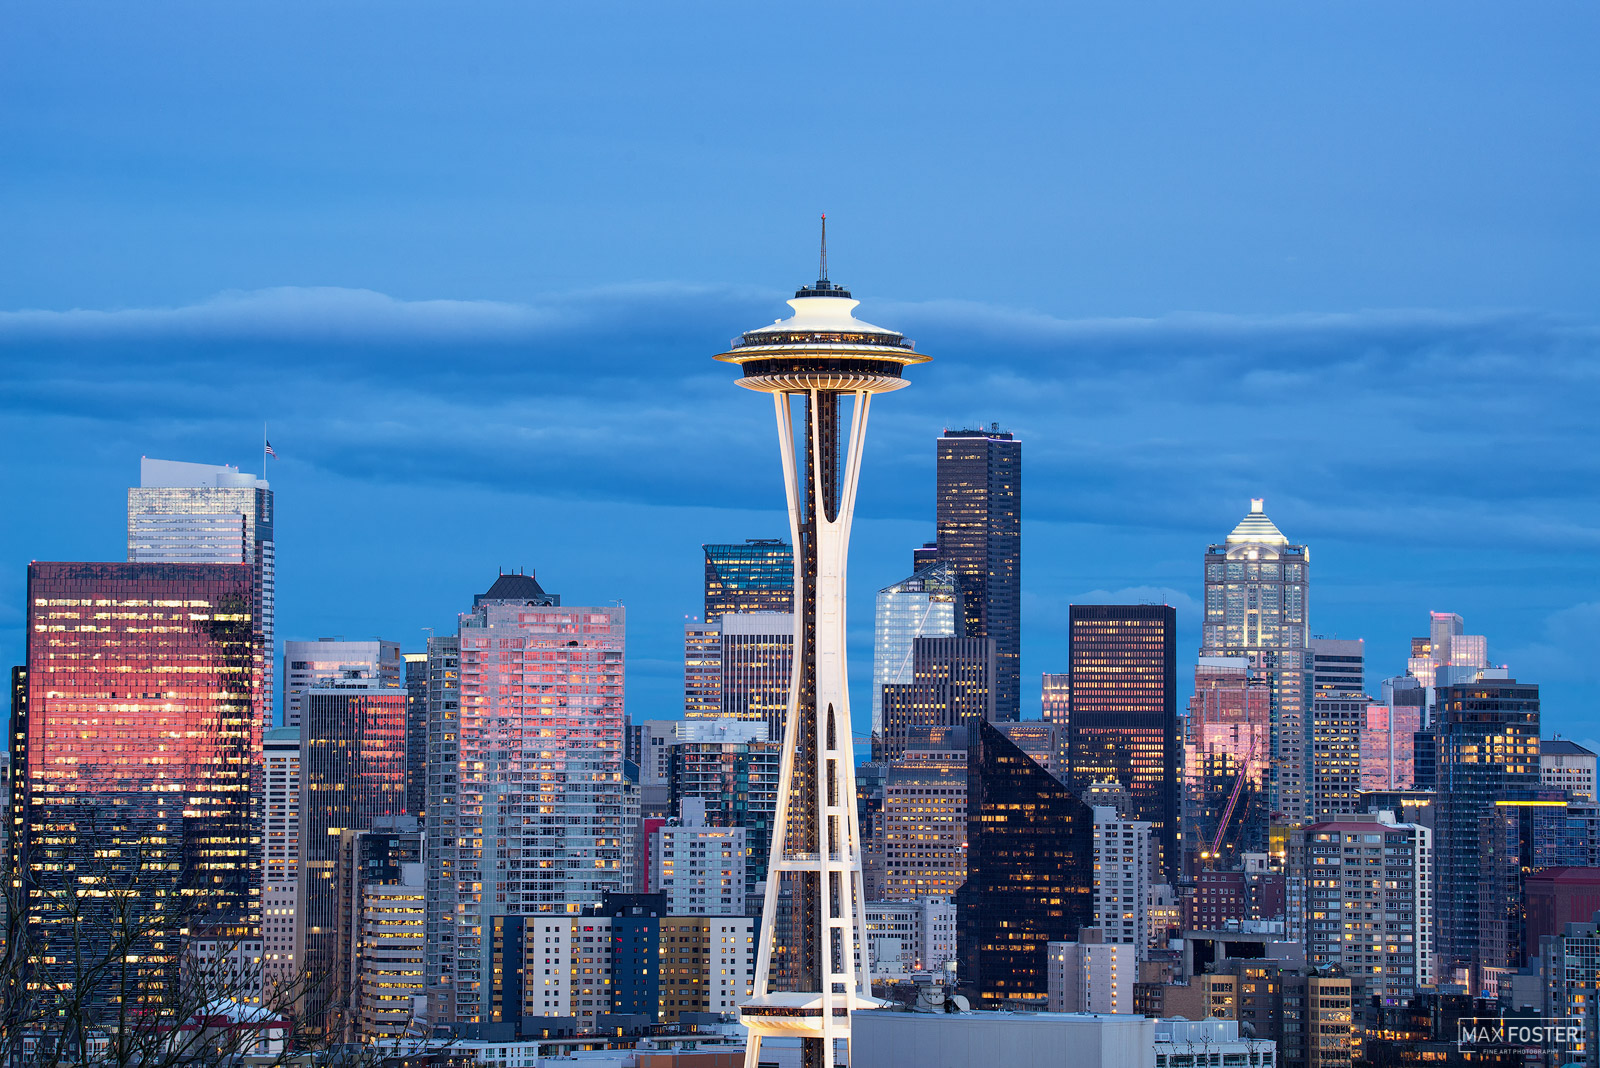 Seattle, Washington, Eye of the Needle, Seaport, West Coast, Puget Sound, Pacific Ocean, Space Needle, photo